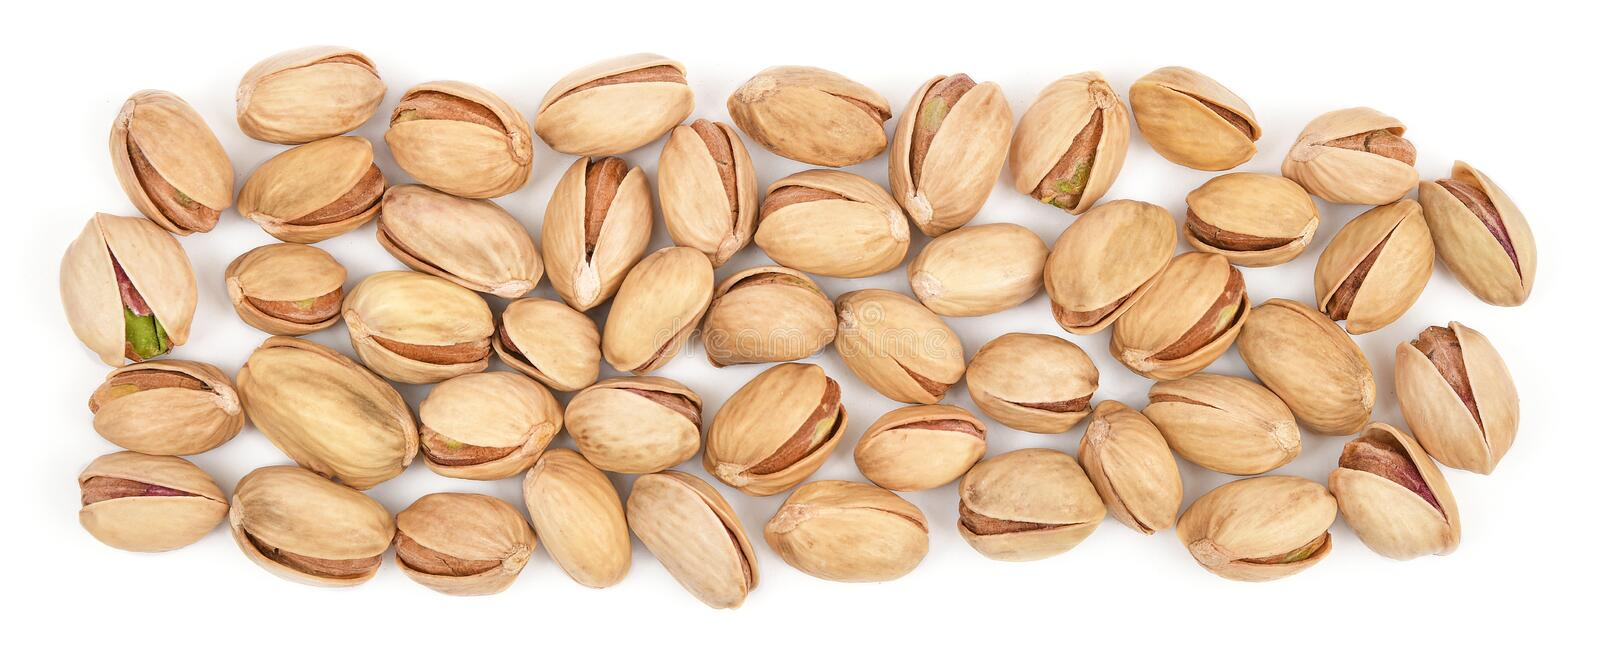 Pistachios isolated on white background. Panorama made of pistachio heap close-up. Nuts pile collection. Top view.  royalty free stock images